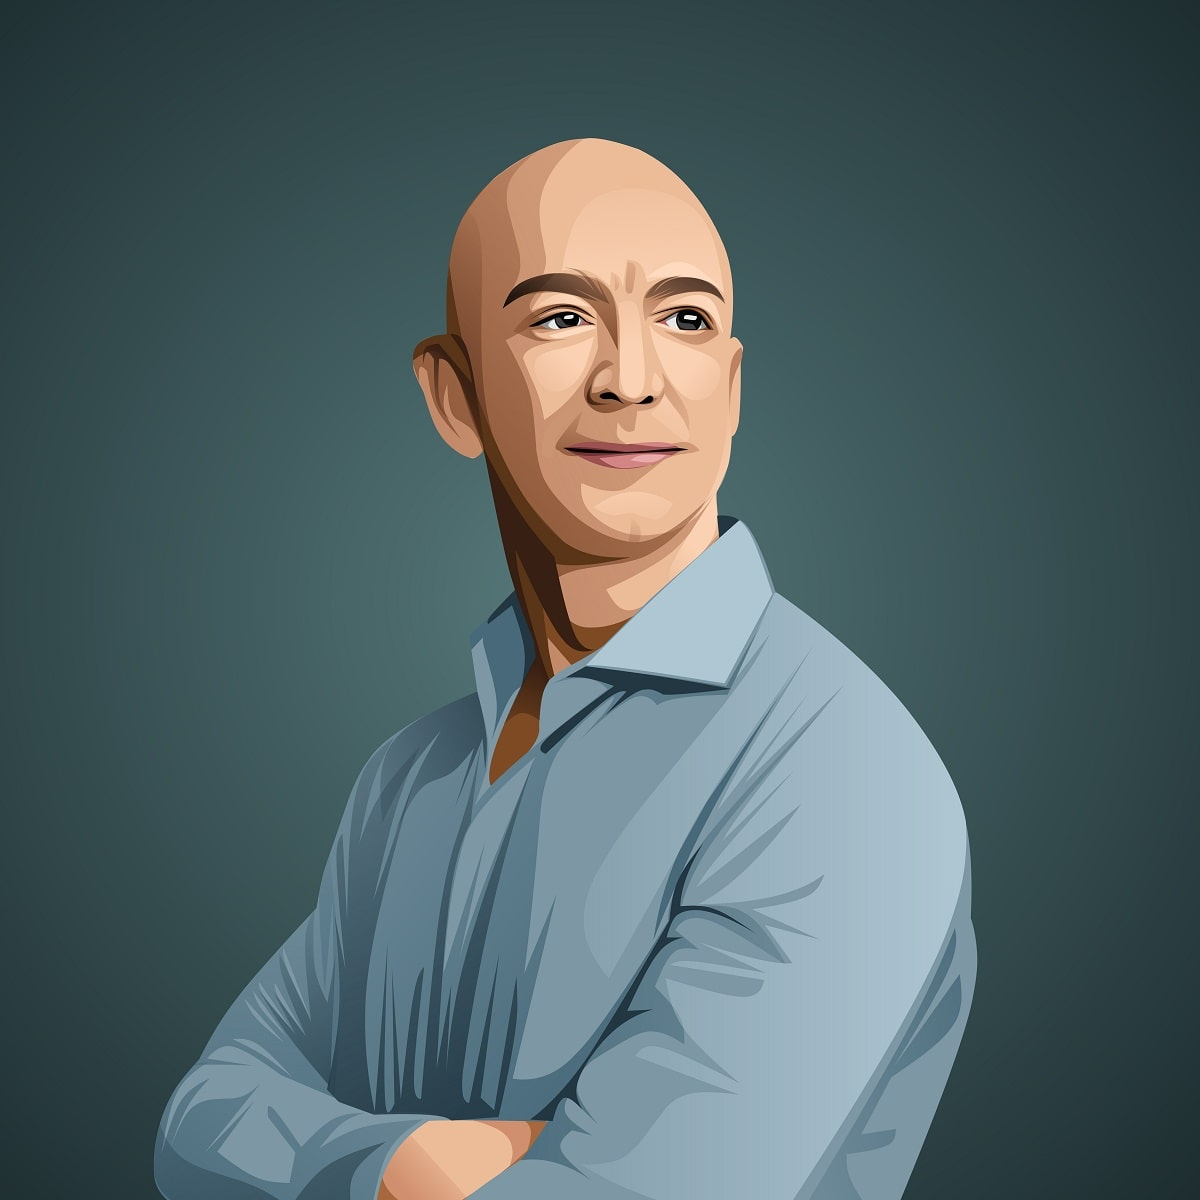 Jeff Bezos © Inspirationfeed. All rights reserved.